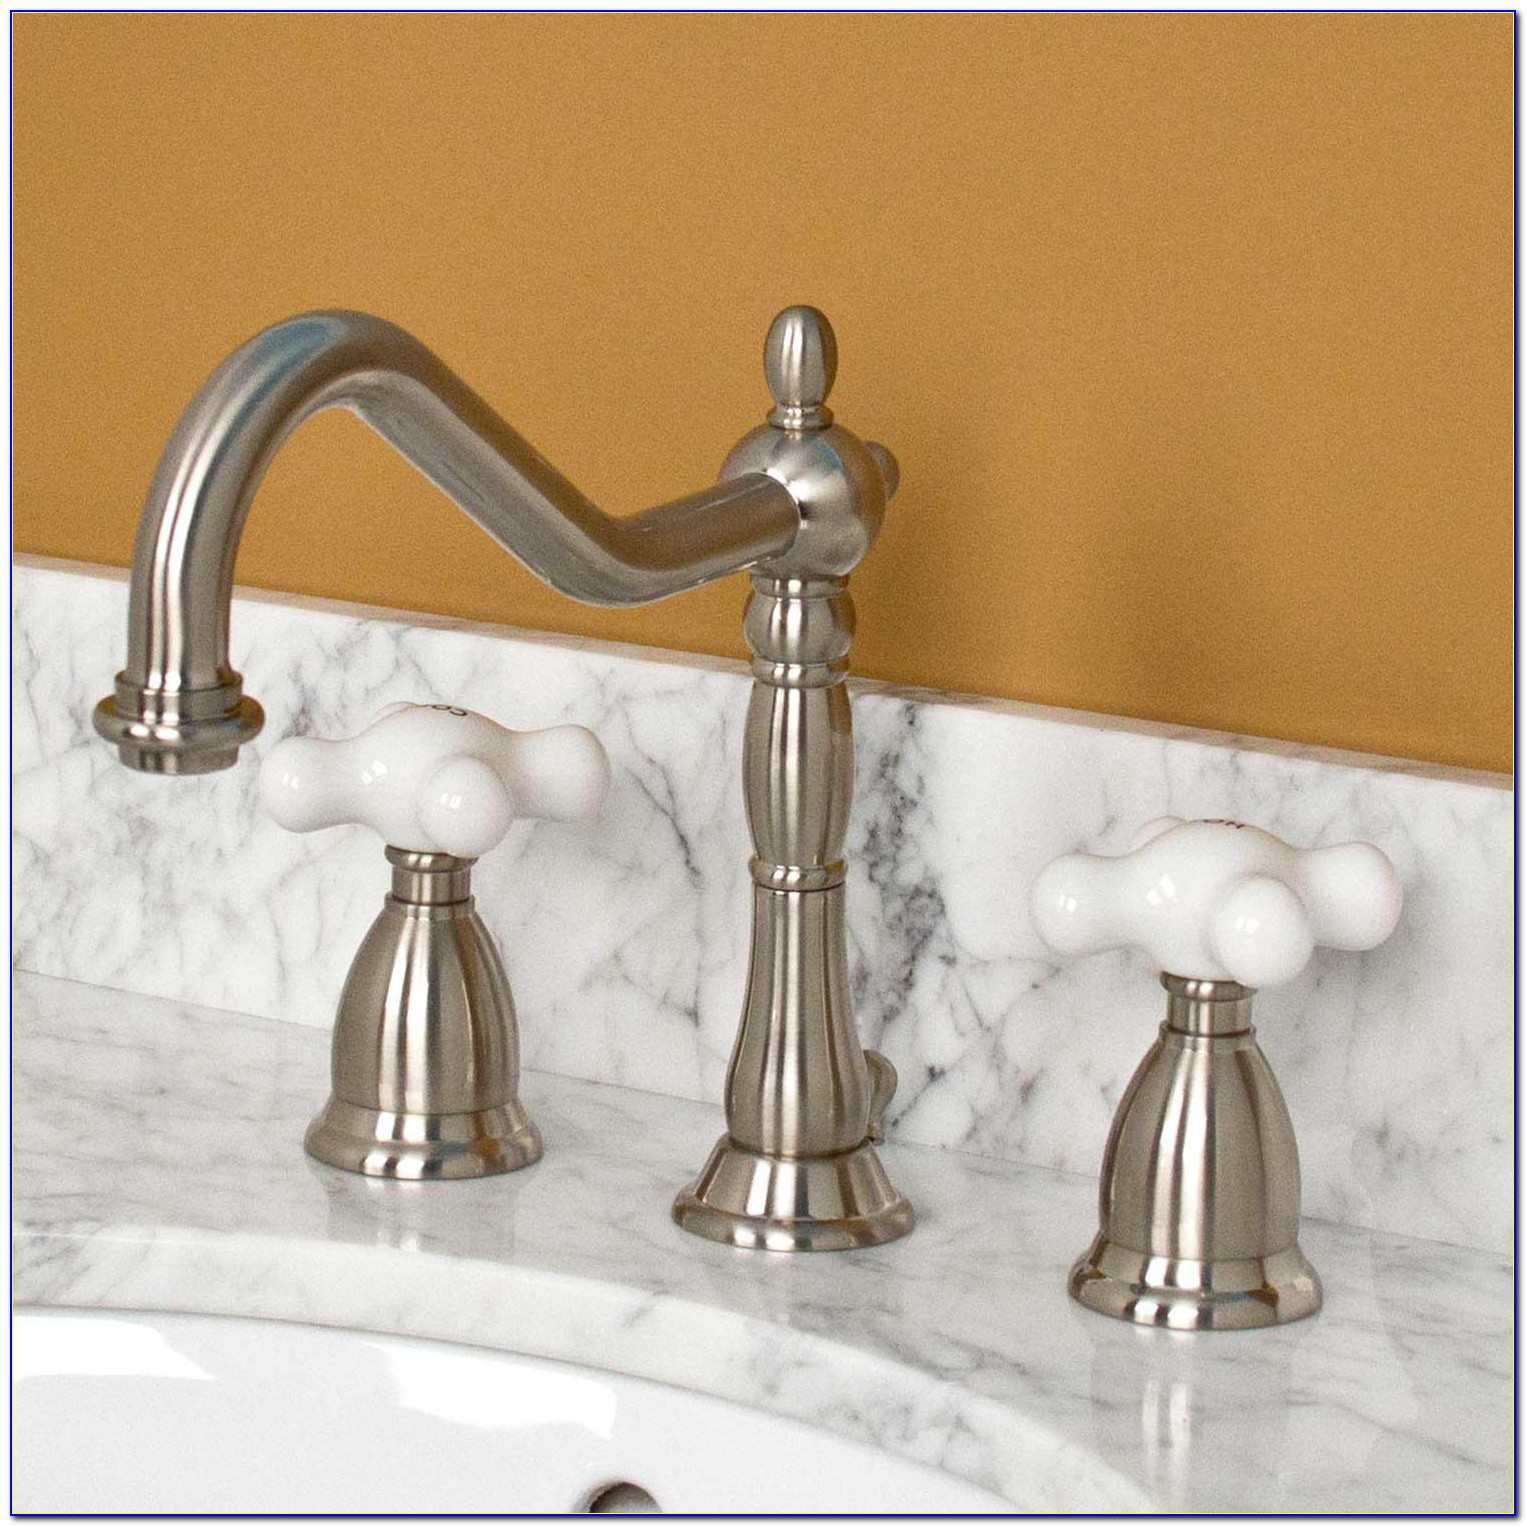 Porcelain Cross Handle Kitchen Faucet